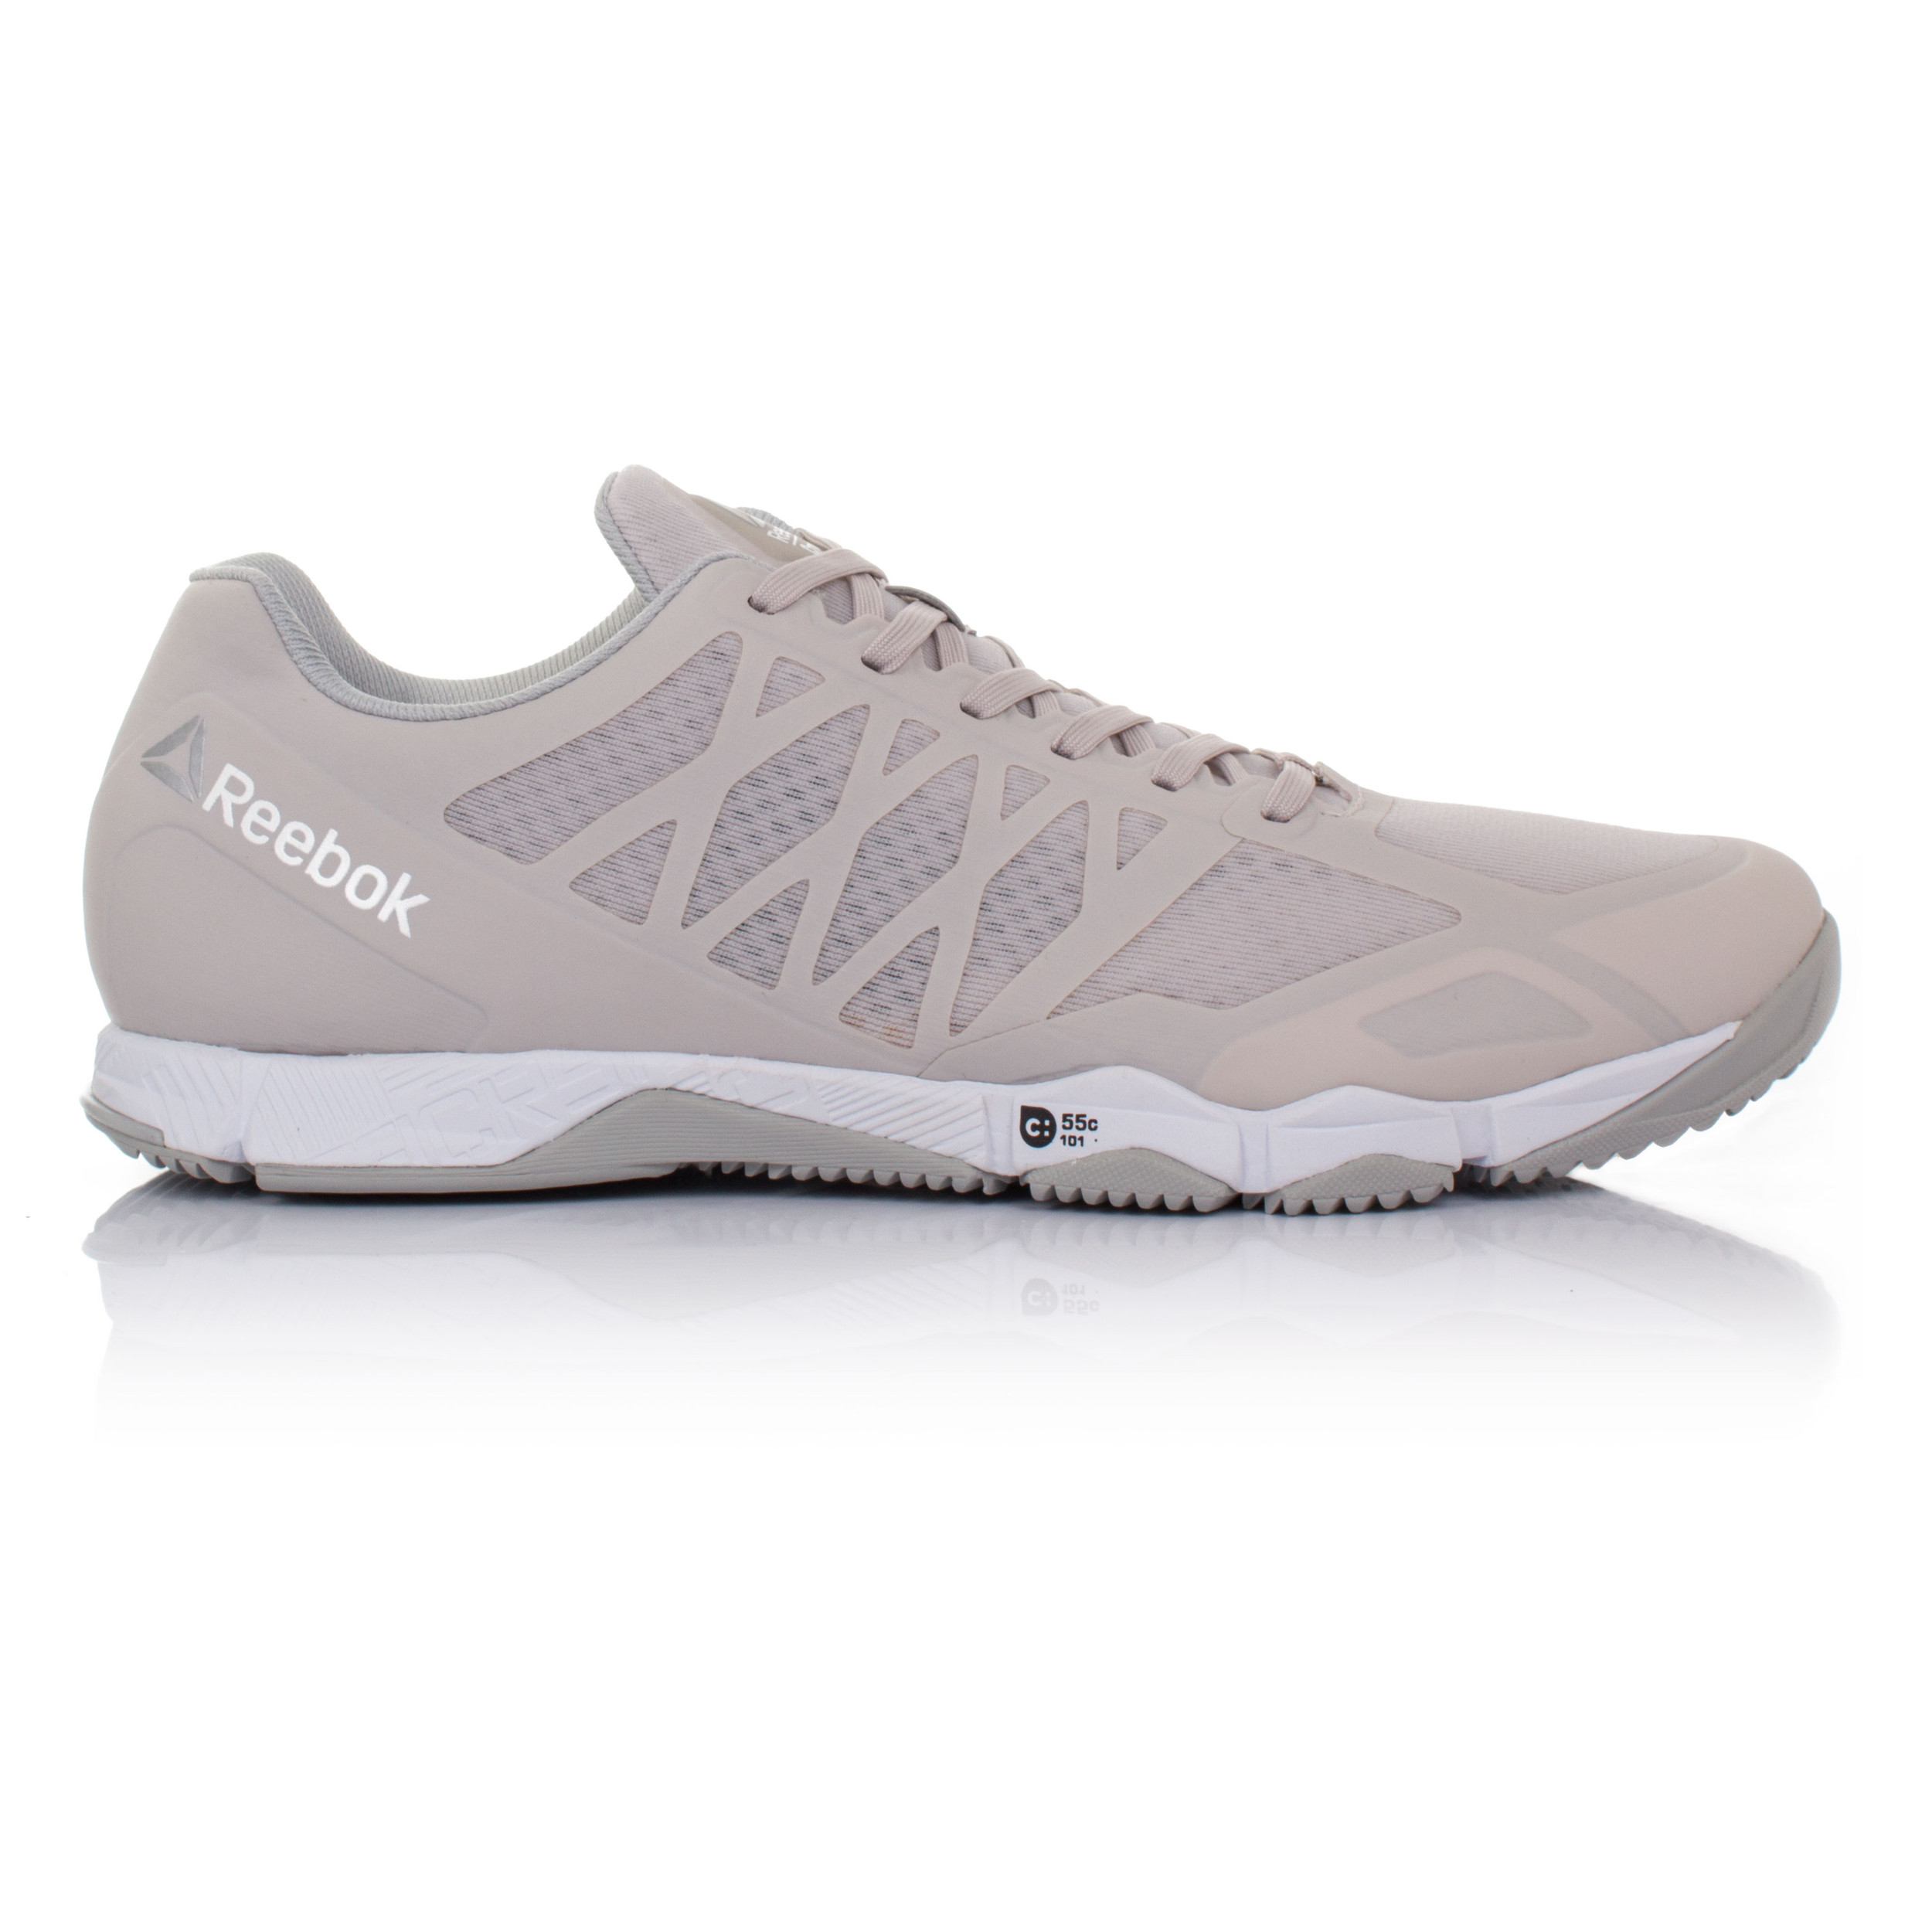 Reebok Crossfit Shoes Women White